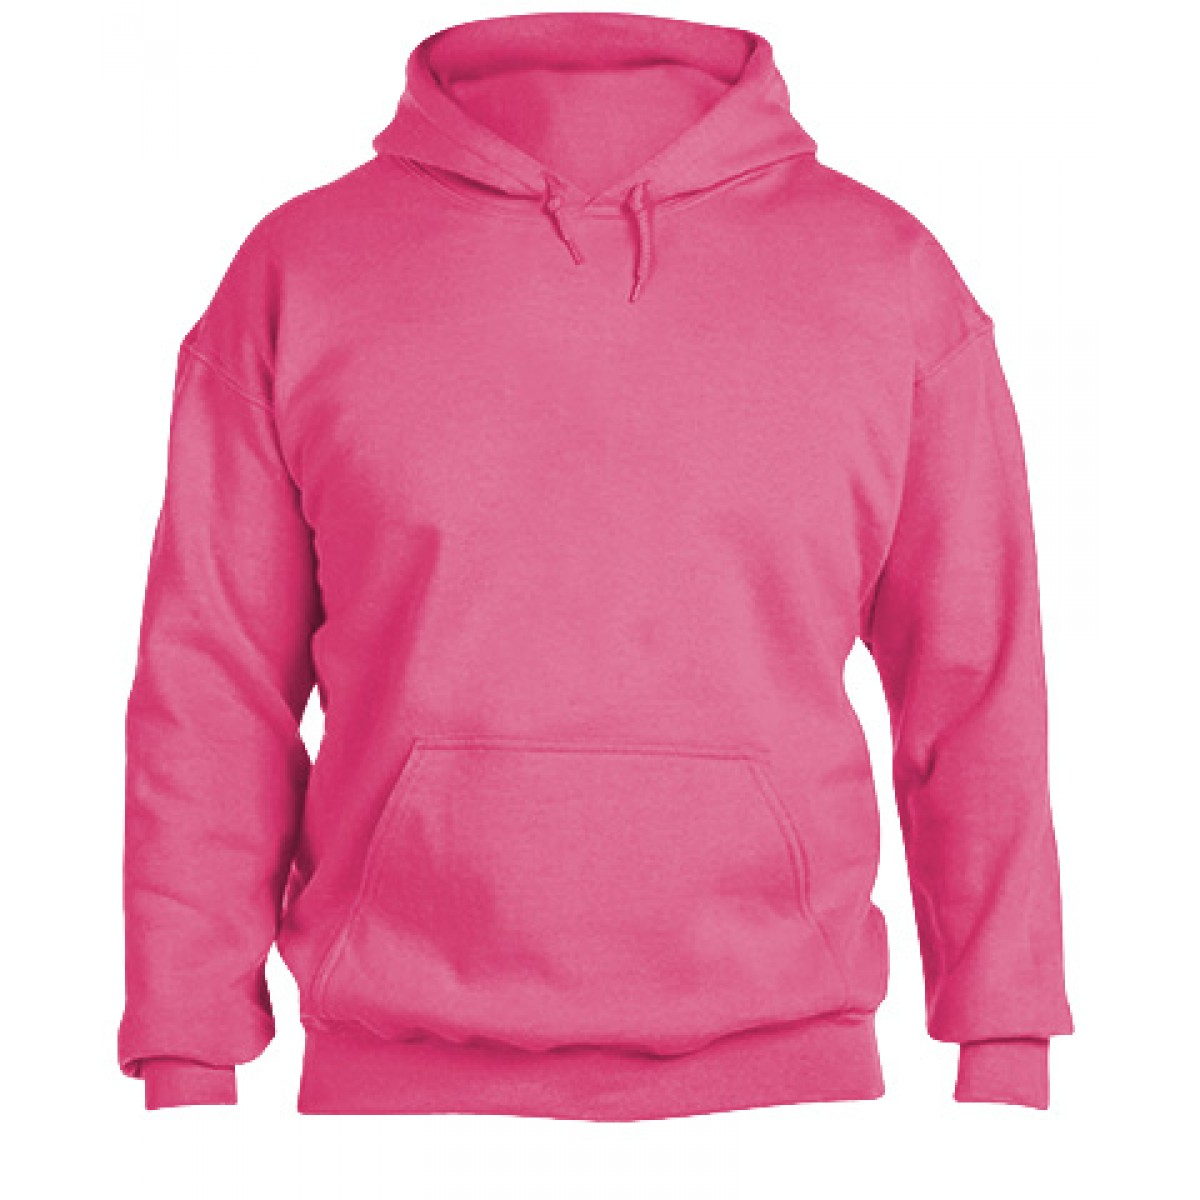 Hooded Sweatshirt 50/50 Heavy Safety Pink-Safety Pink-2XL